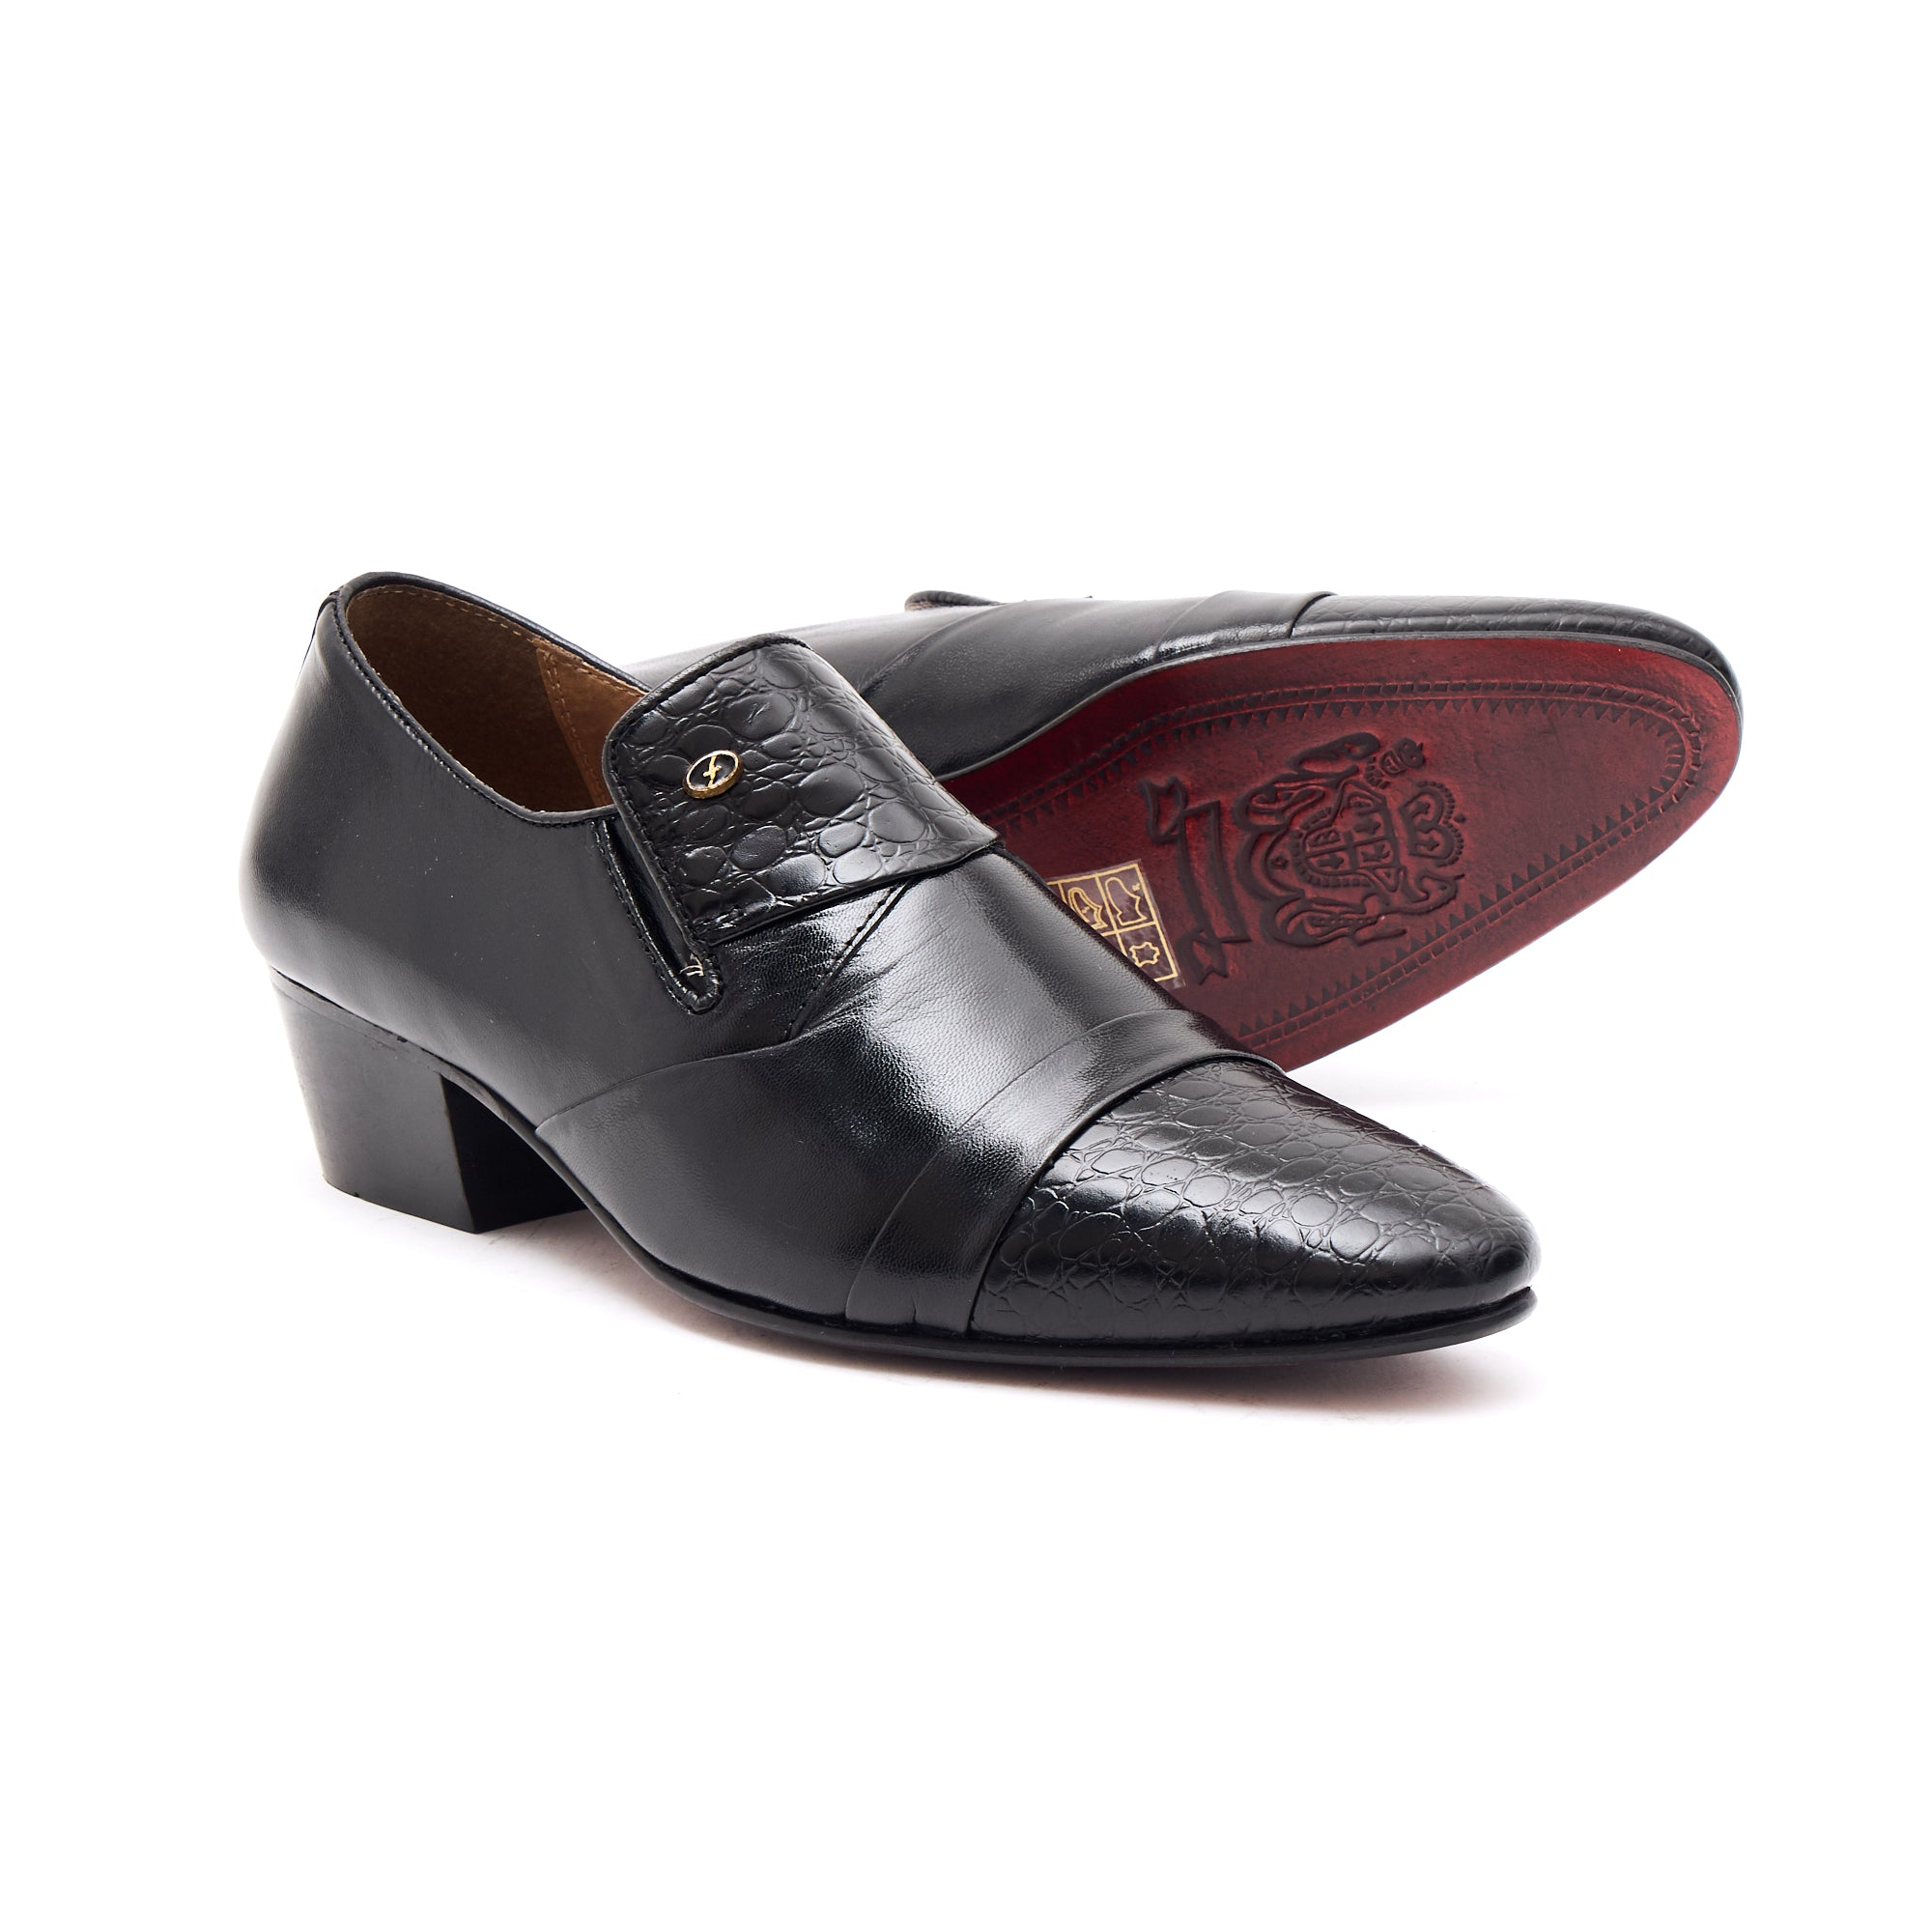 Mens Cuban Heel Leather Shoes- 34005 Black